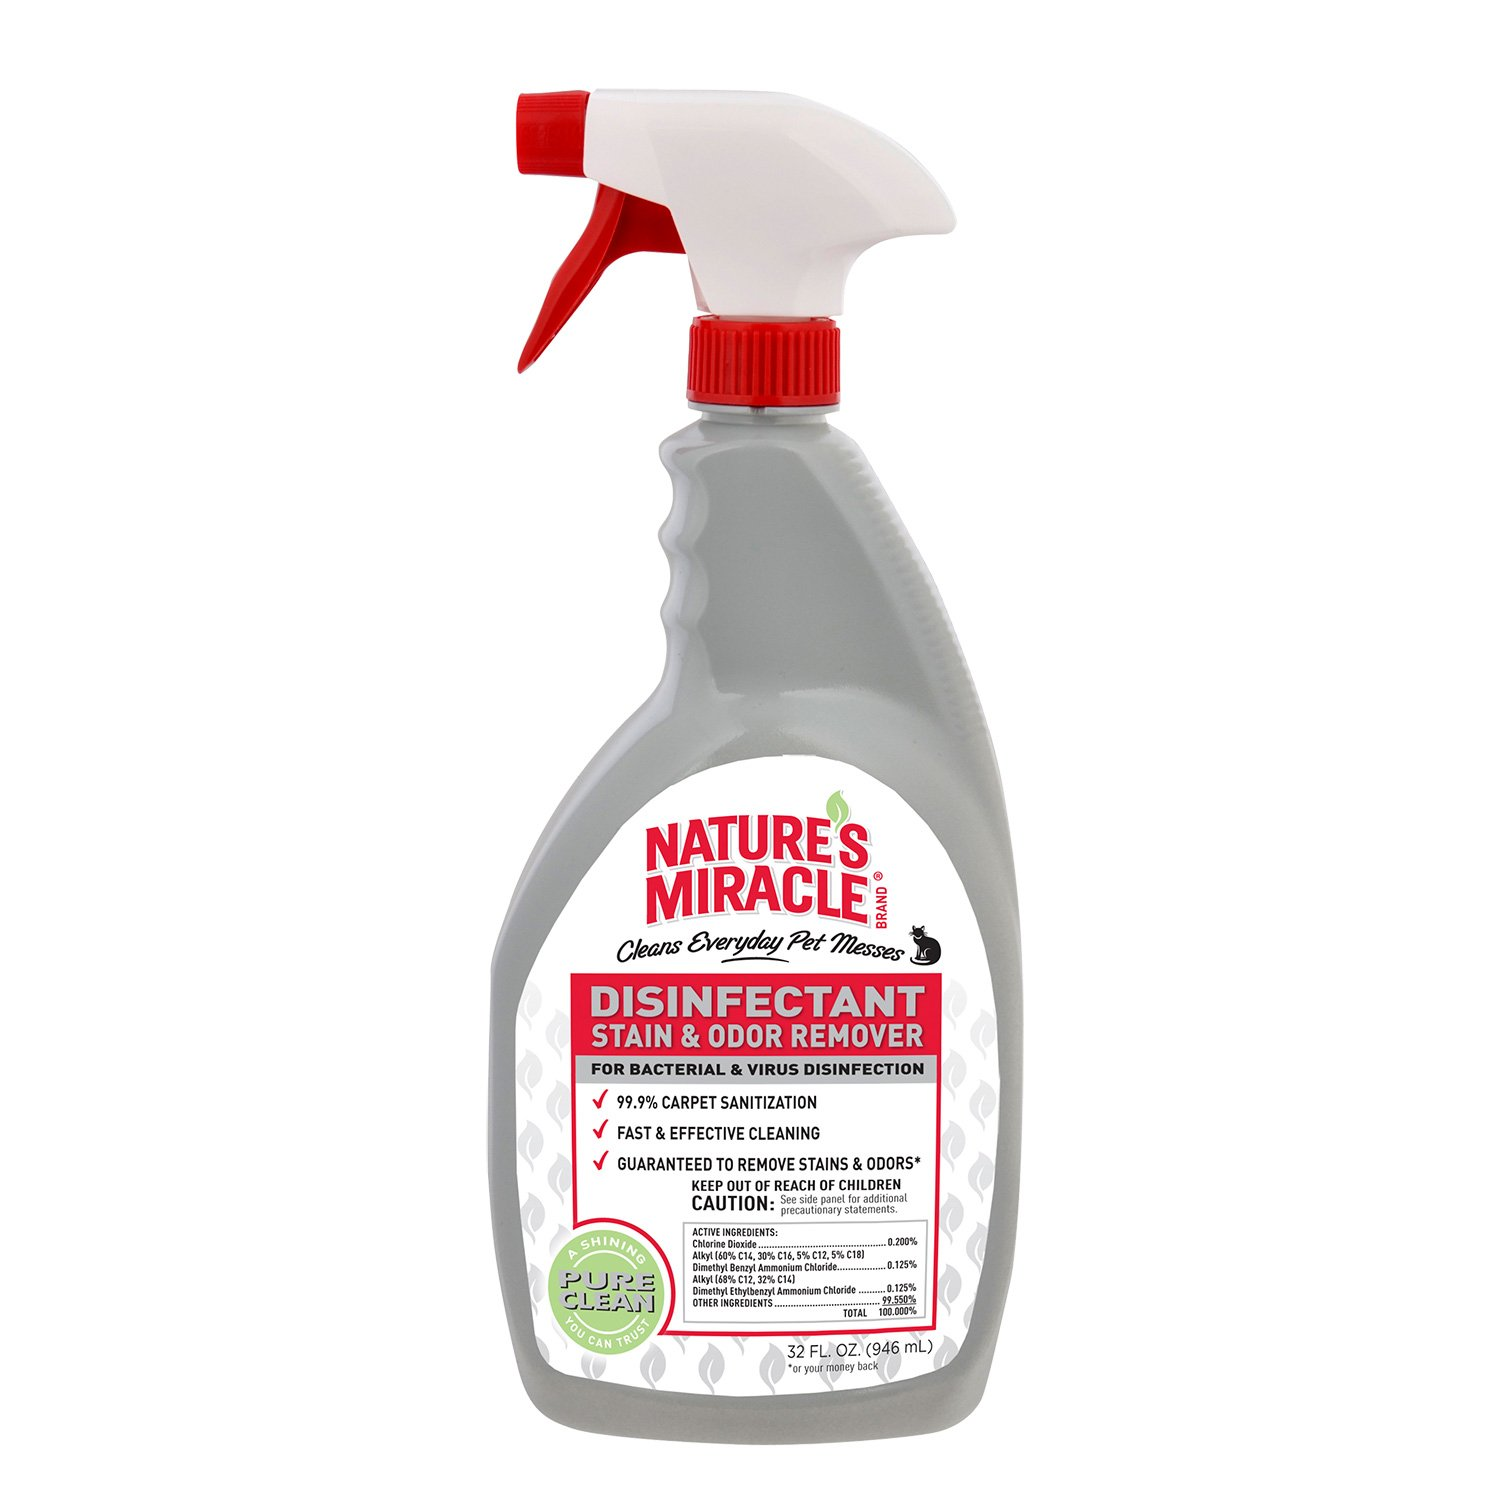 Nature's Miracle NM-5482 Brand Disinfectant Stain/Odor Remover, 32 oz